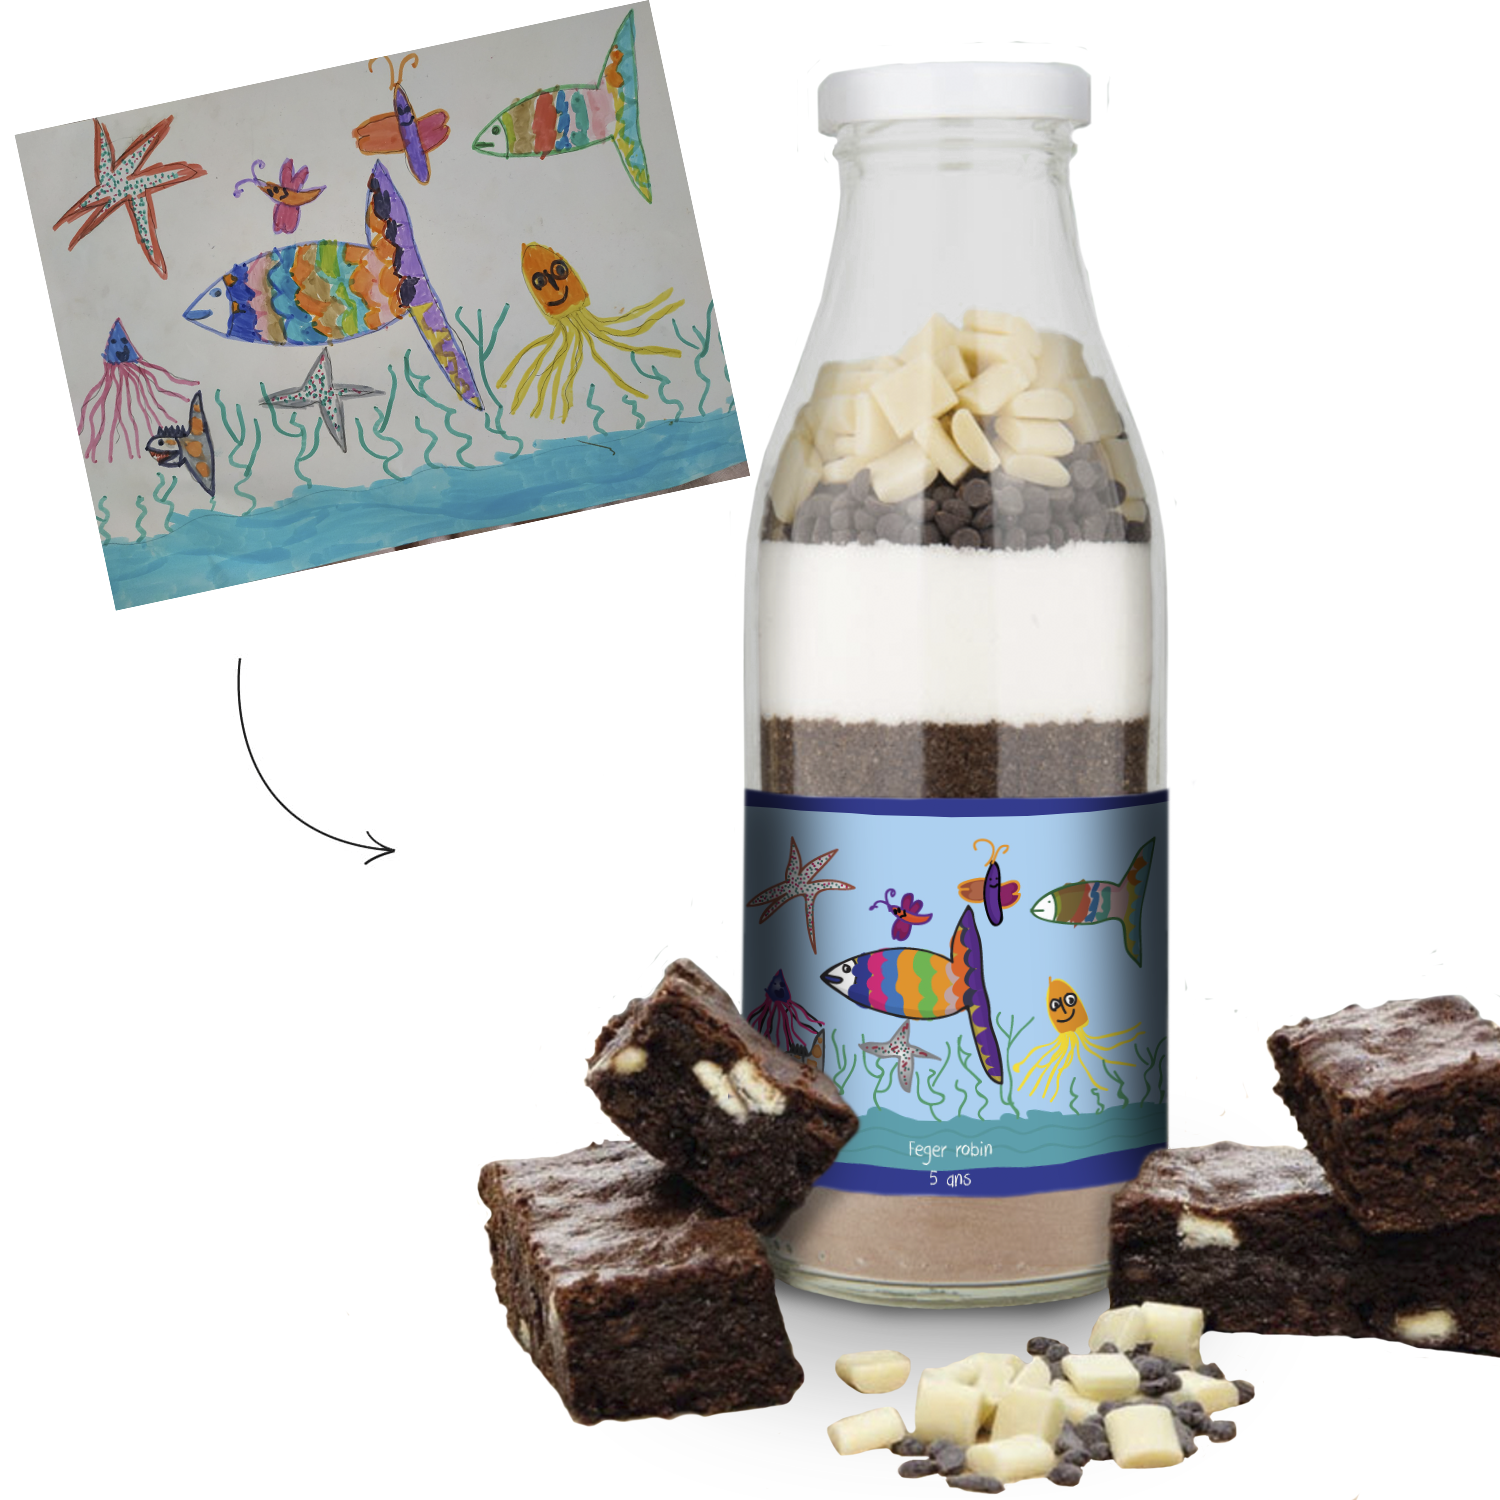 personalised gifts personalised christmas gifts best brownie mix picture gifts